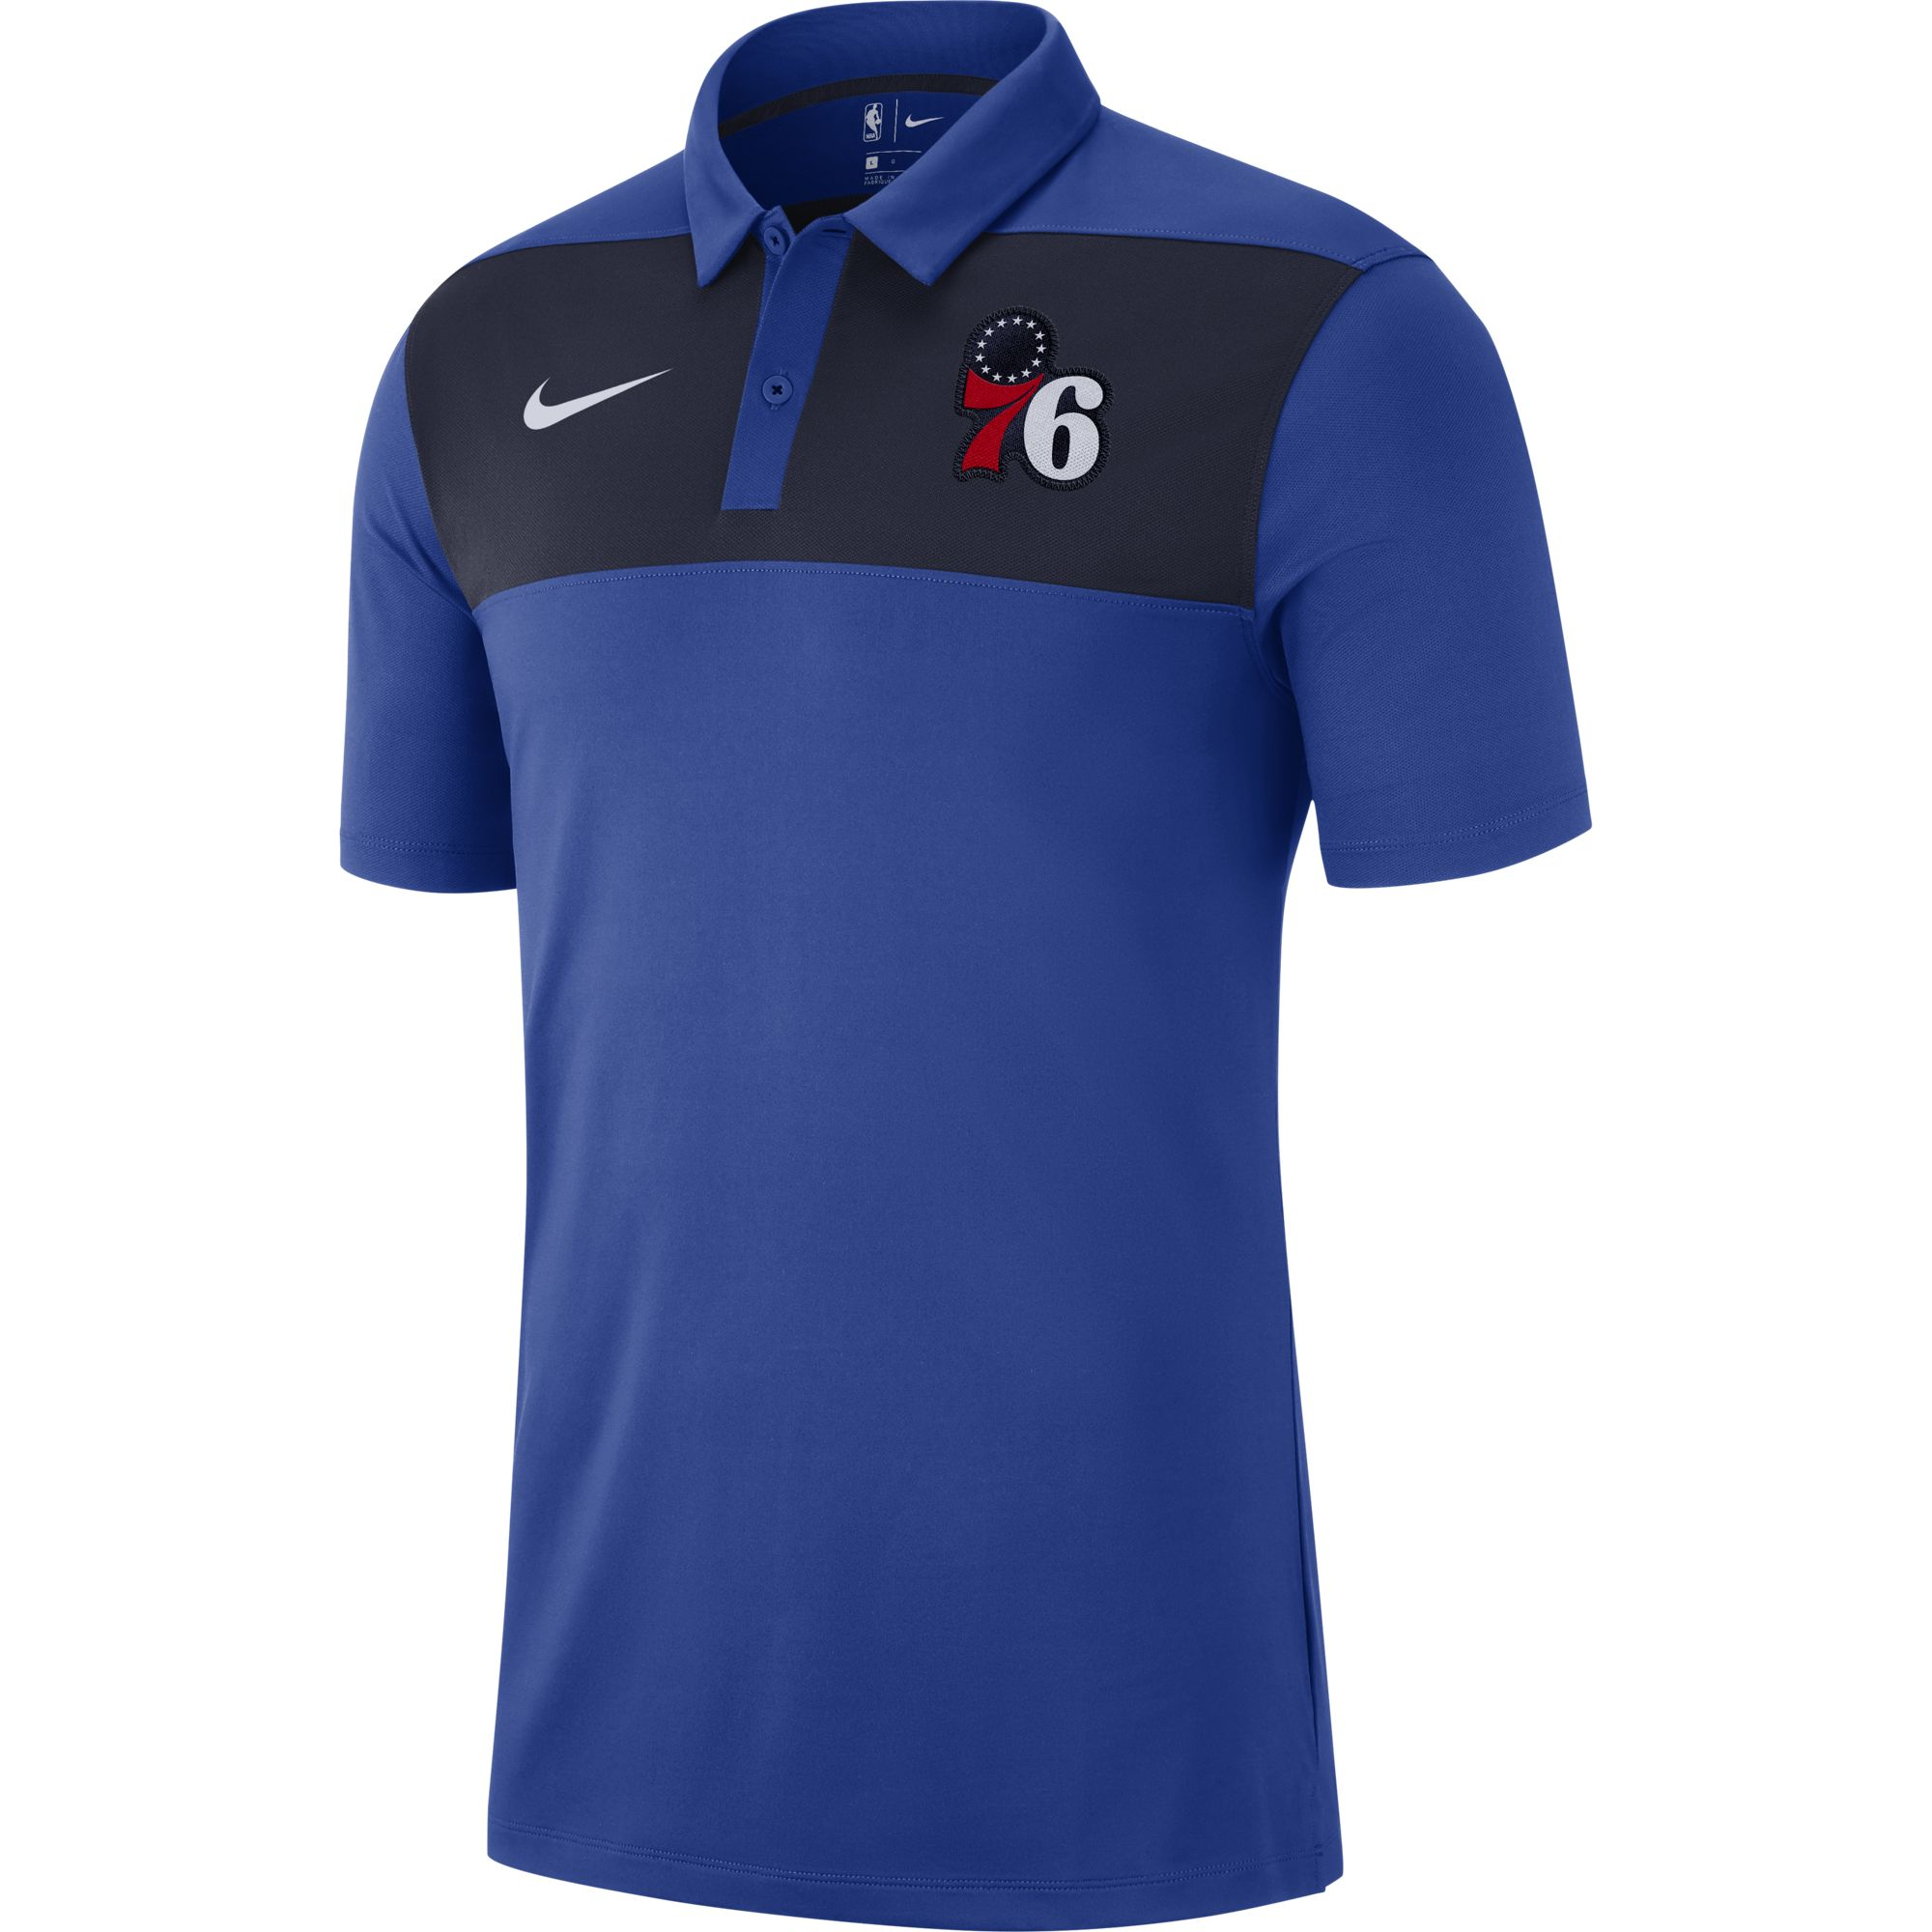 reputable site 4835c 7367d Philadelphia 76ers Men s Classic Rush Polo by Nike - Wells Fargo Center -  Official Online Store